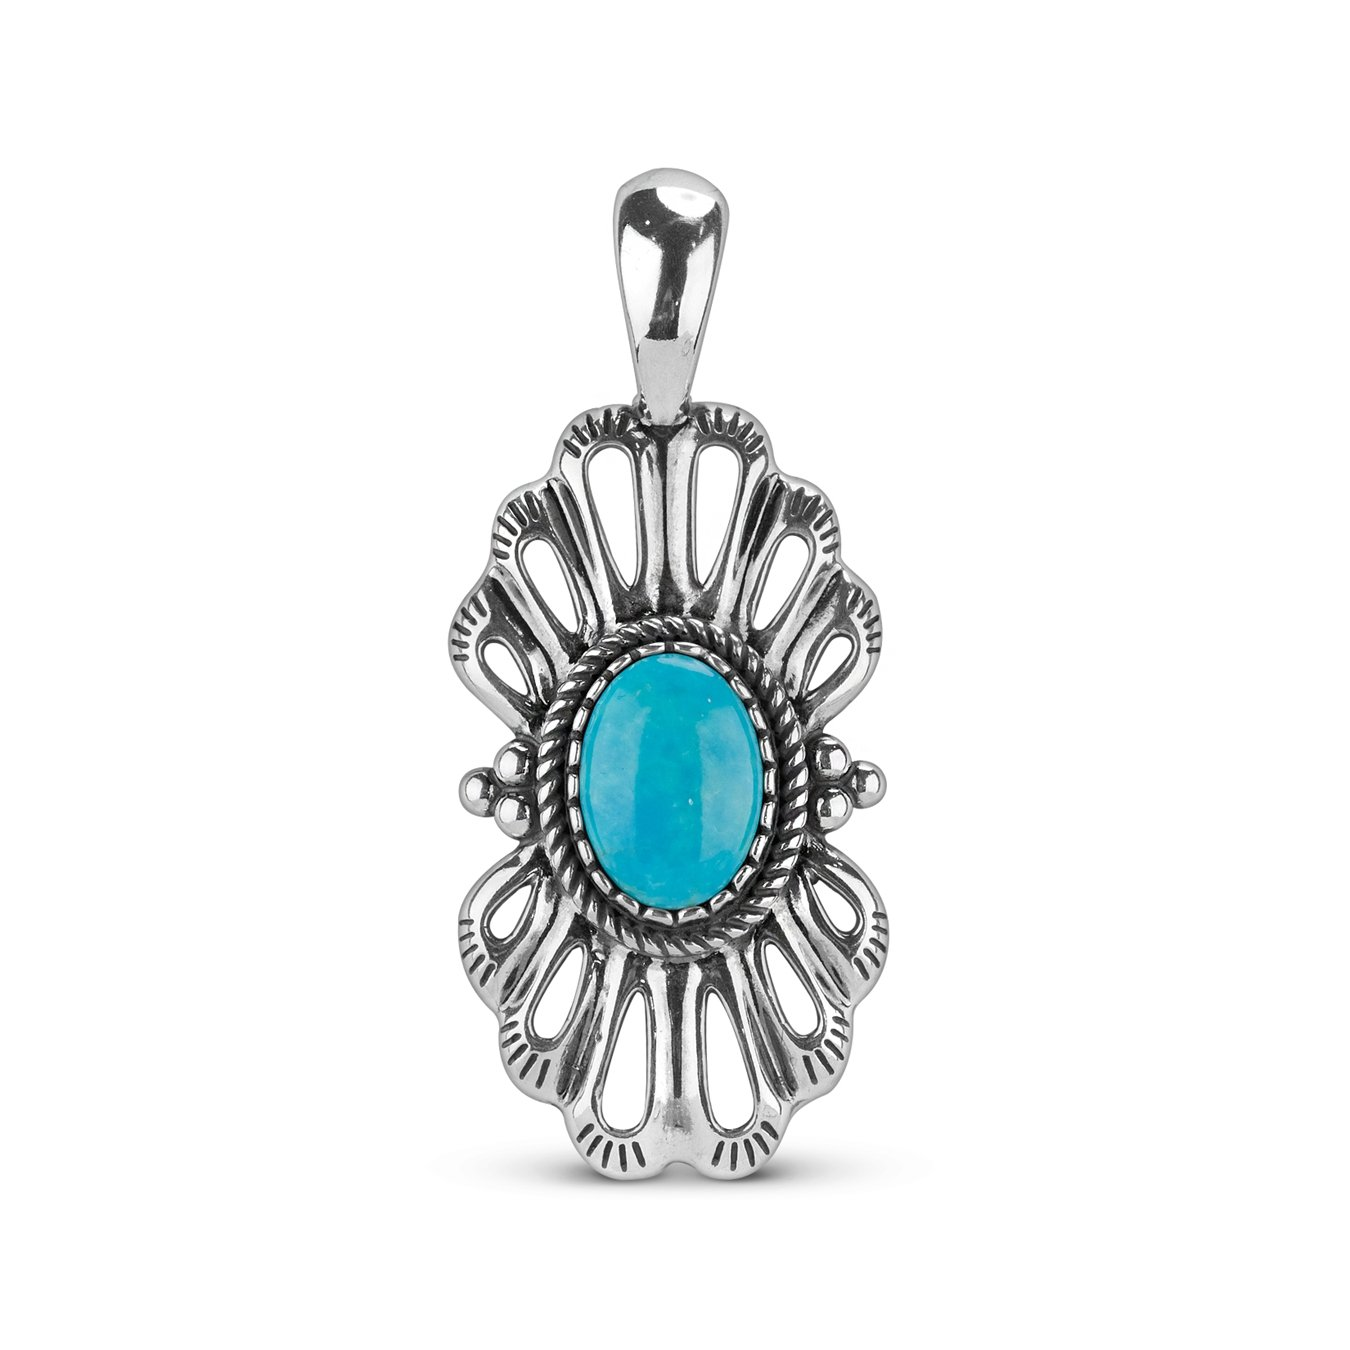 American West Sterling Silver Turquoise Pendant Enhancer Relios REL-60101145